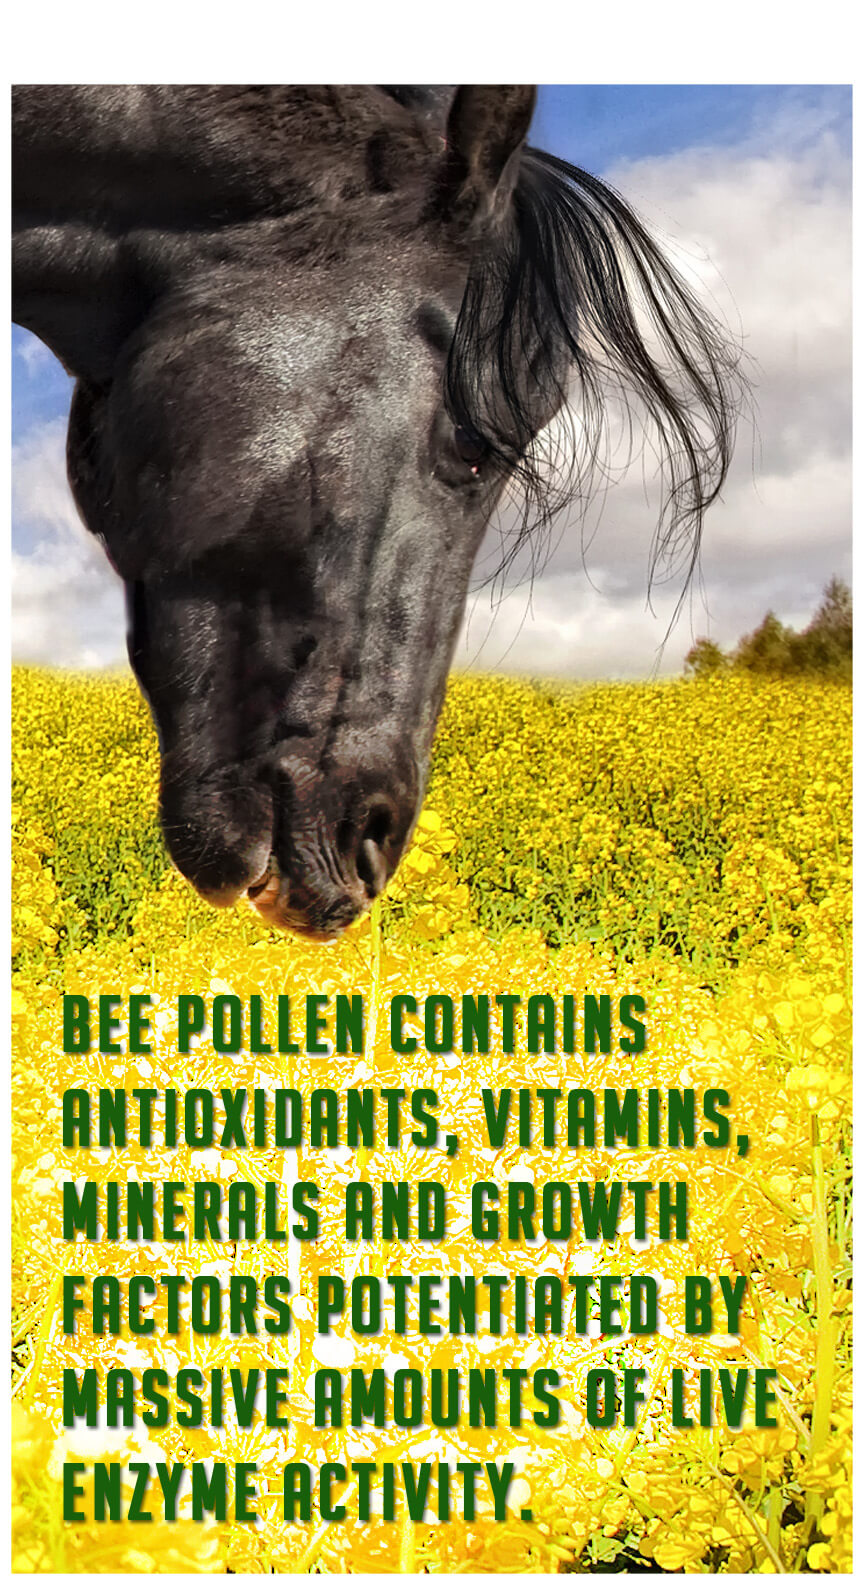 Bee pollen contains antioxidants, vitamins, minerals, and growth factors potentiated by massive amounts of live enzyme activity.